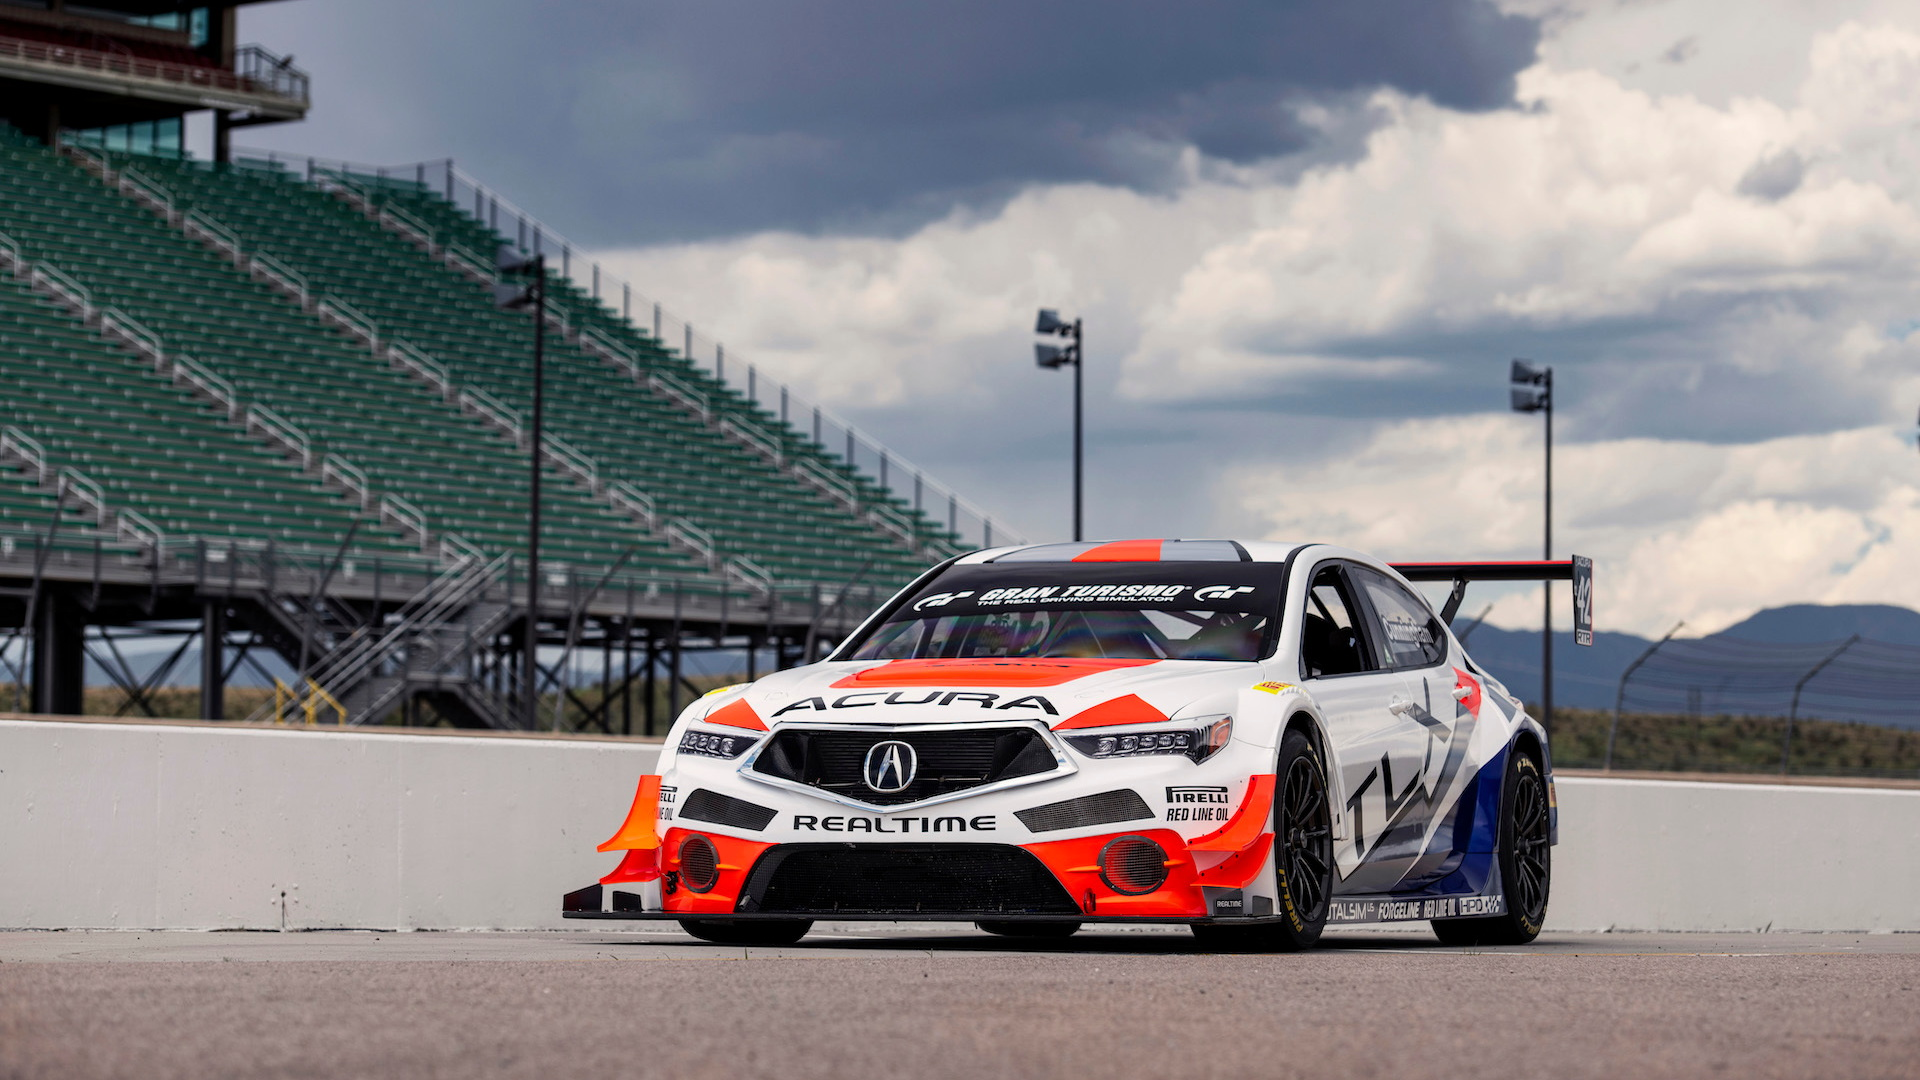 RealTime Racing Acura TLX GT Pikes Peak Hill Climb race car